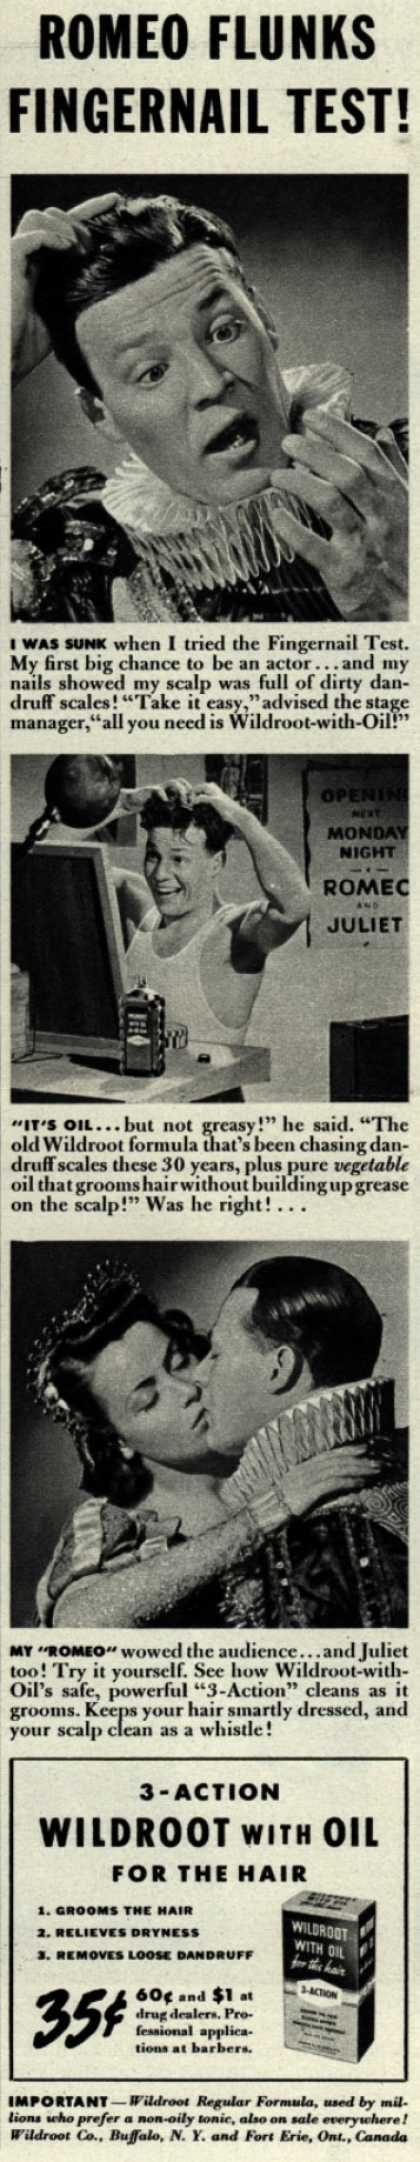 Wildroot Company's Wildroot with Oil – Romeo Flunks Fingernail Test (1940)